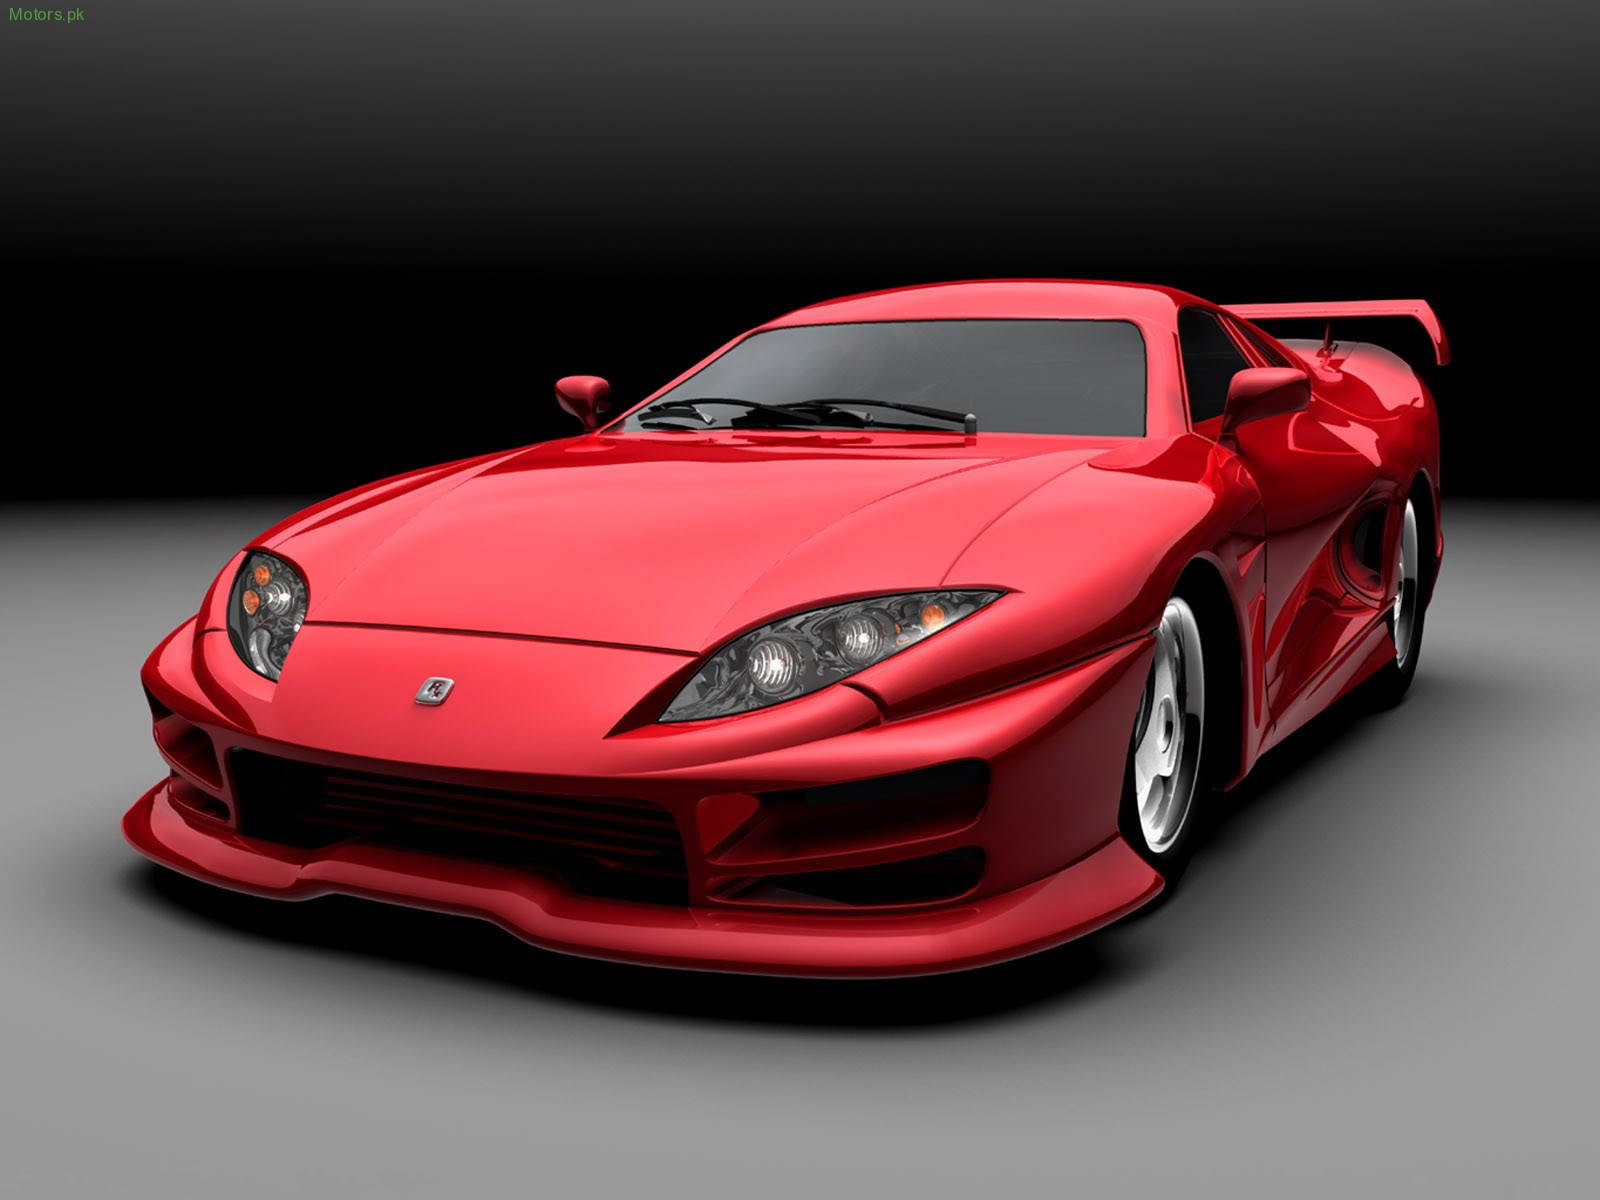 car 3d wallpapers - photo #32